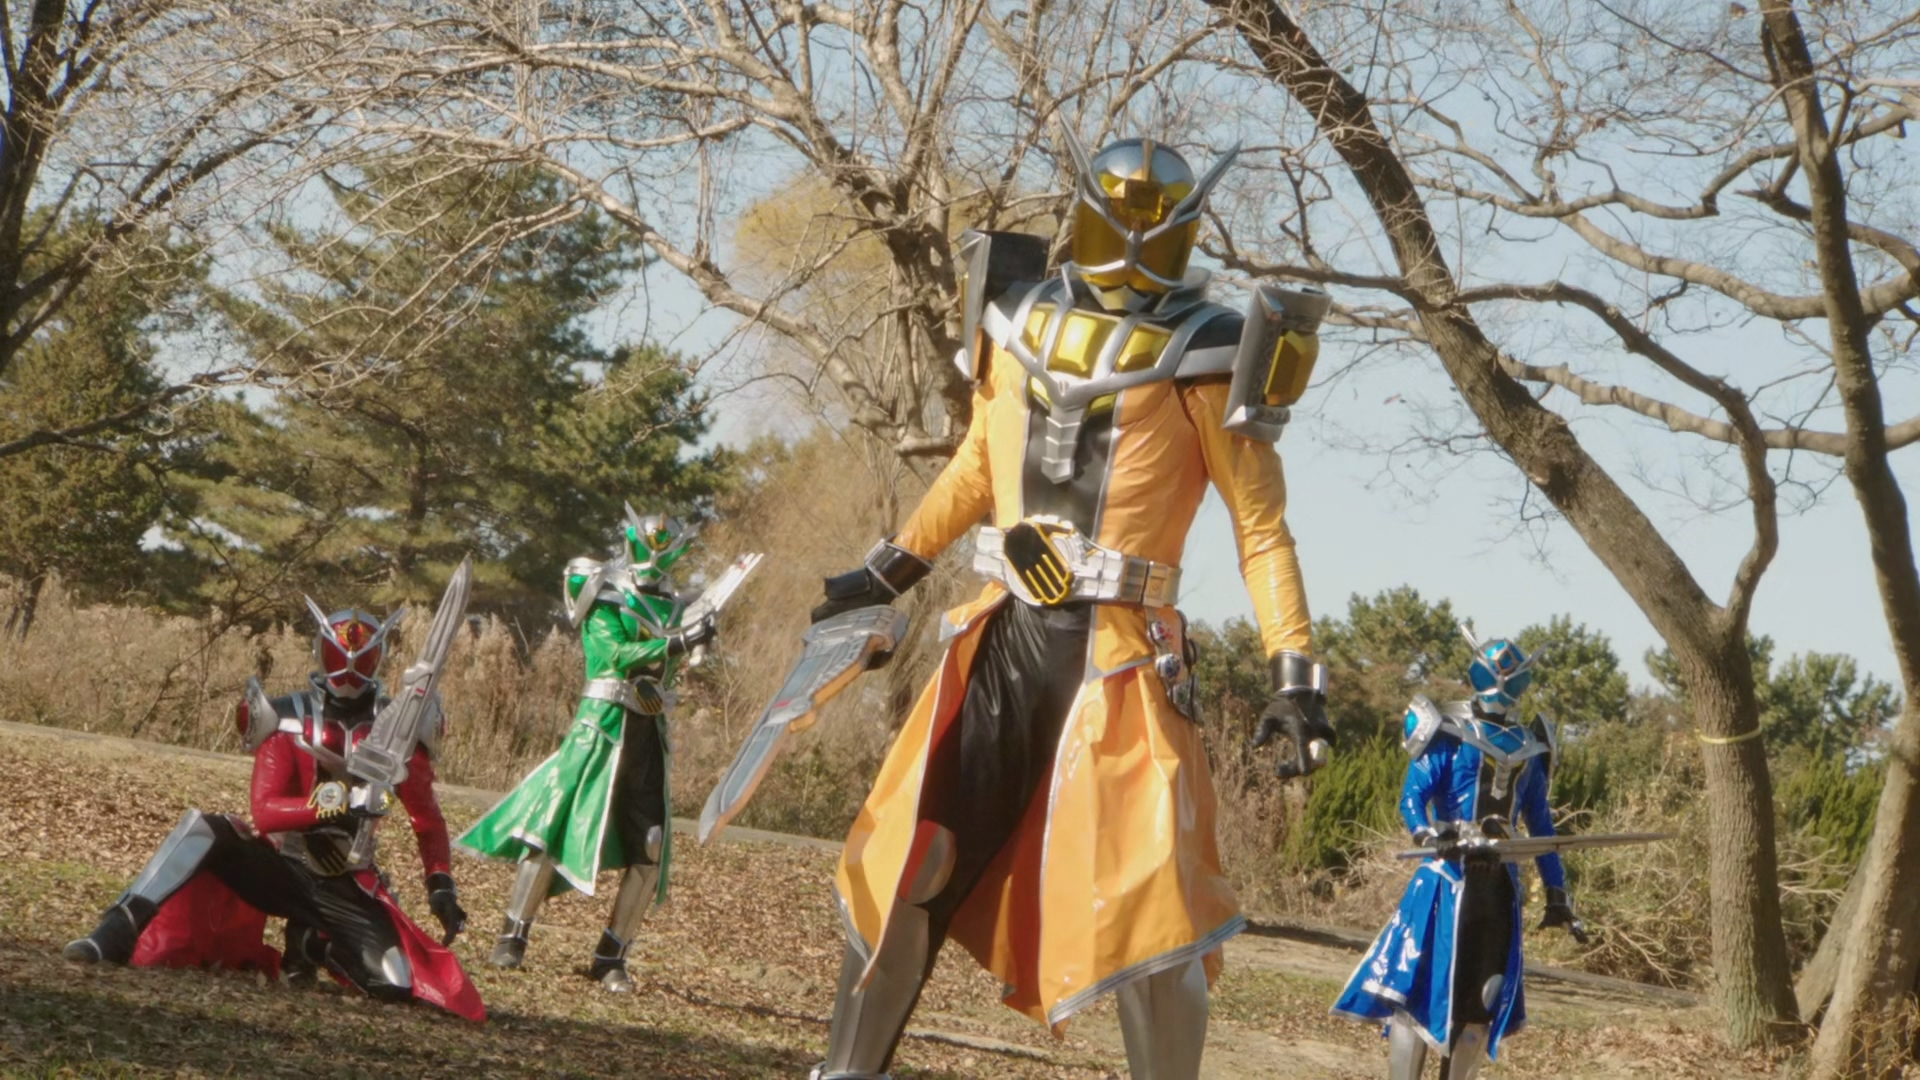 http://img2.wikia.nocookie.net/__cb20130402204713/kamenrider/images/d/d1/Drago_Timer_-_%22Final_Time%22.jpg